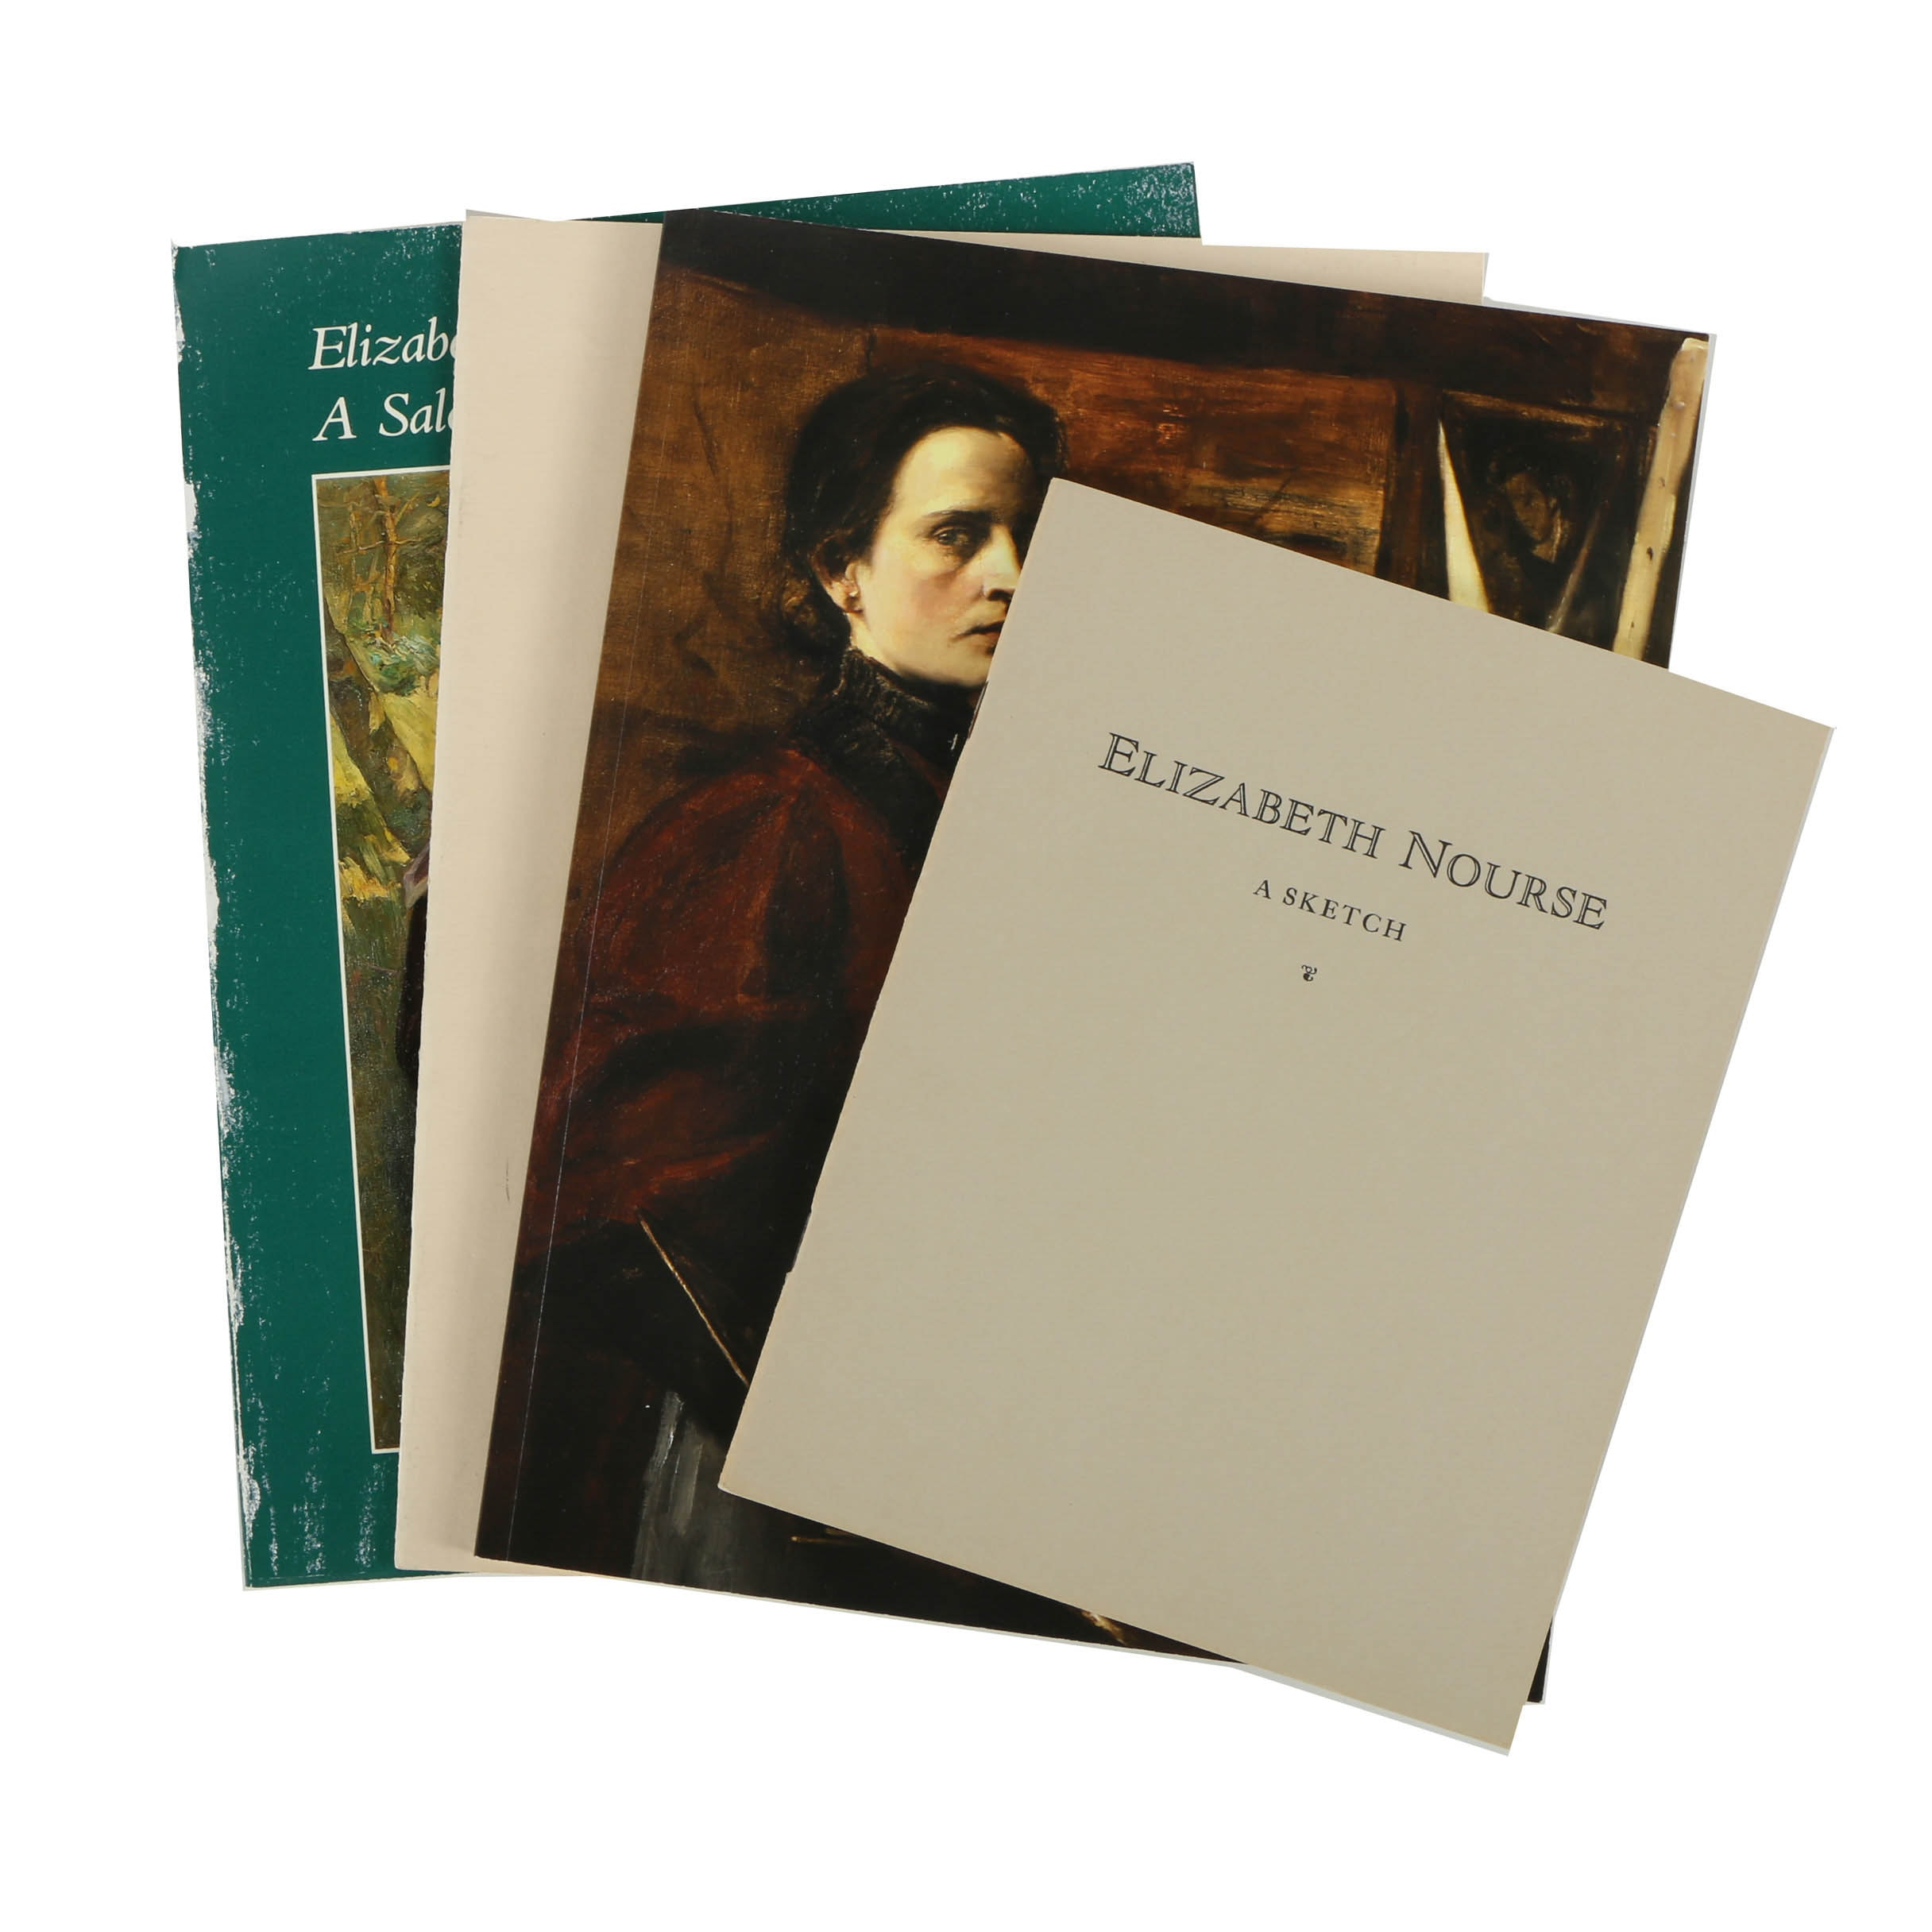 Collection of Elizabeth Nourse-Related Publications